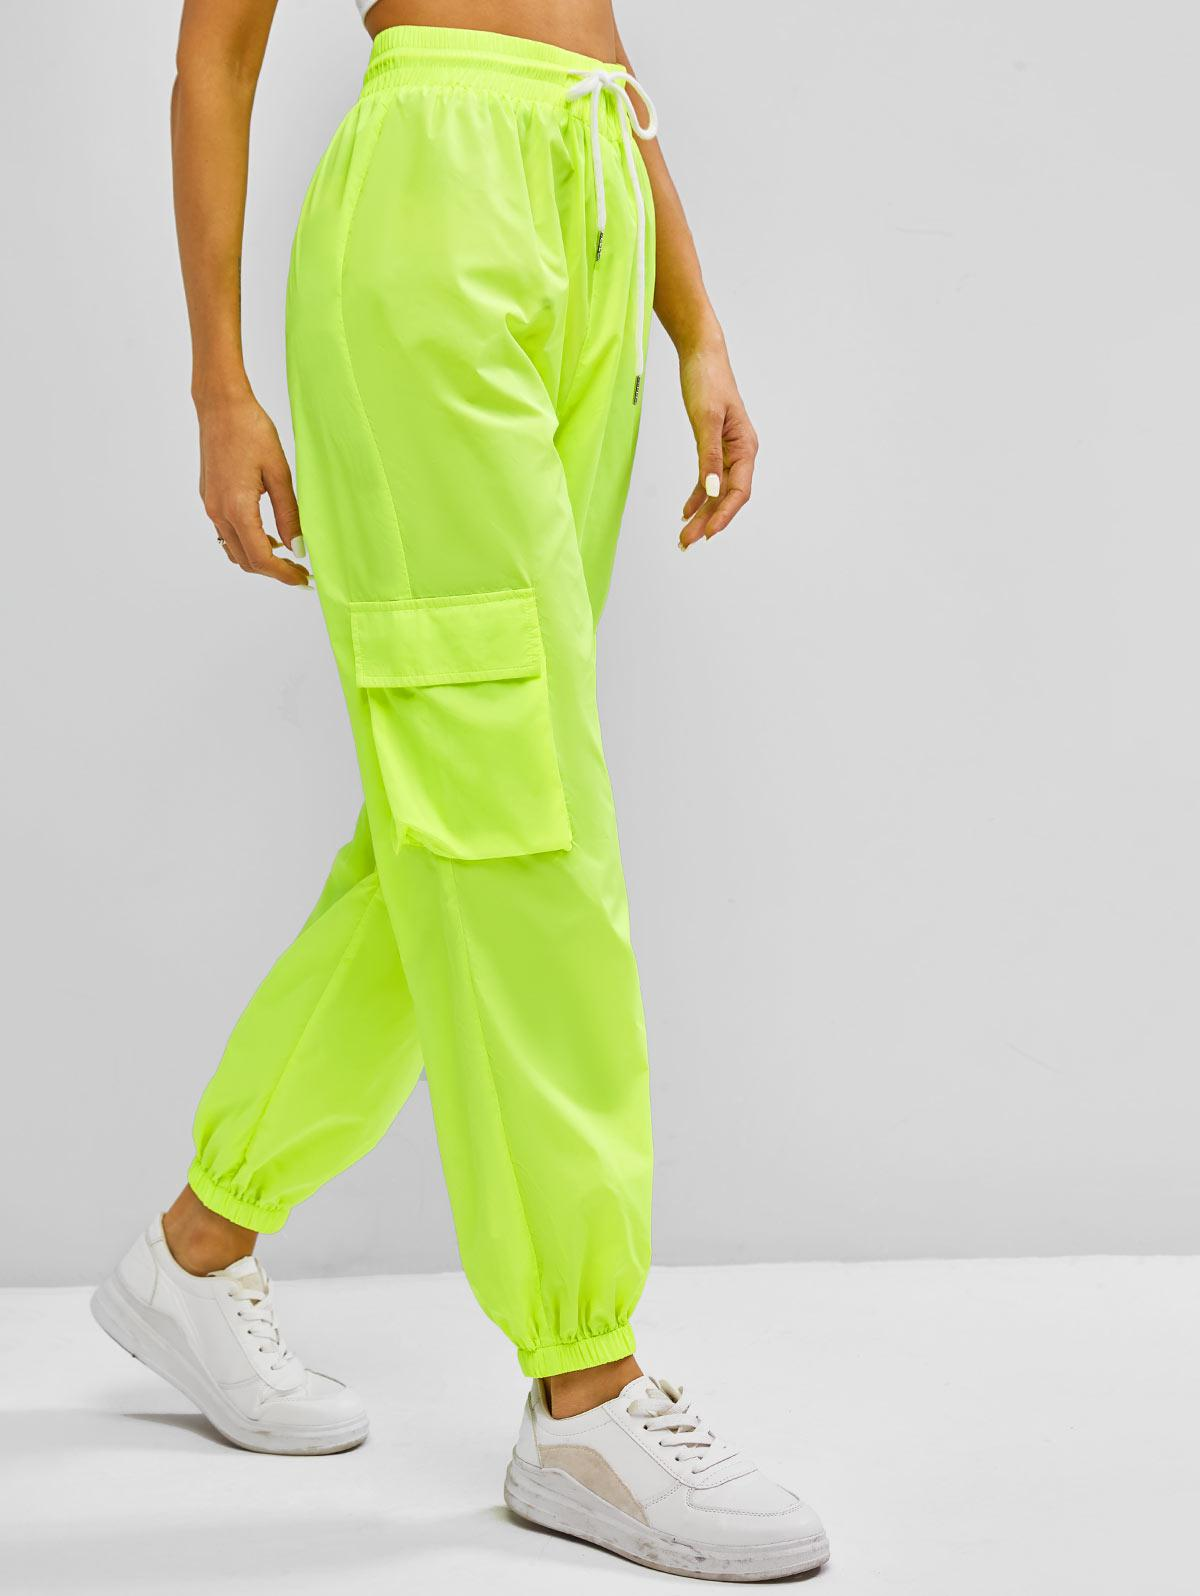 Neon Drawstring Pocket Windbreaker Cargo Pants